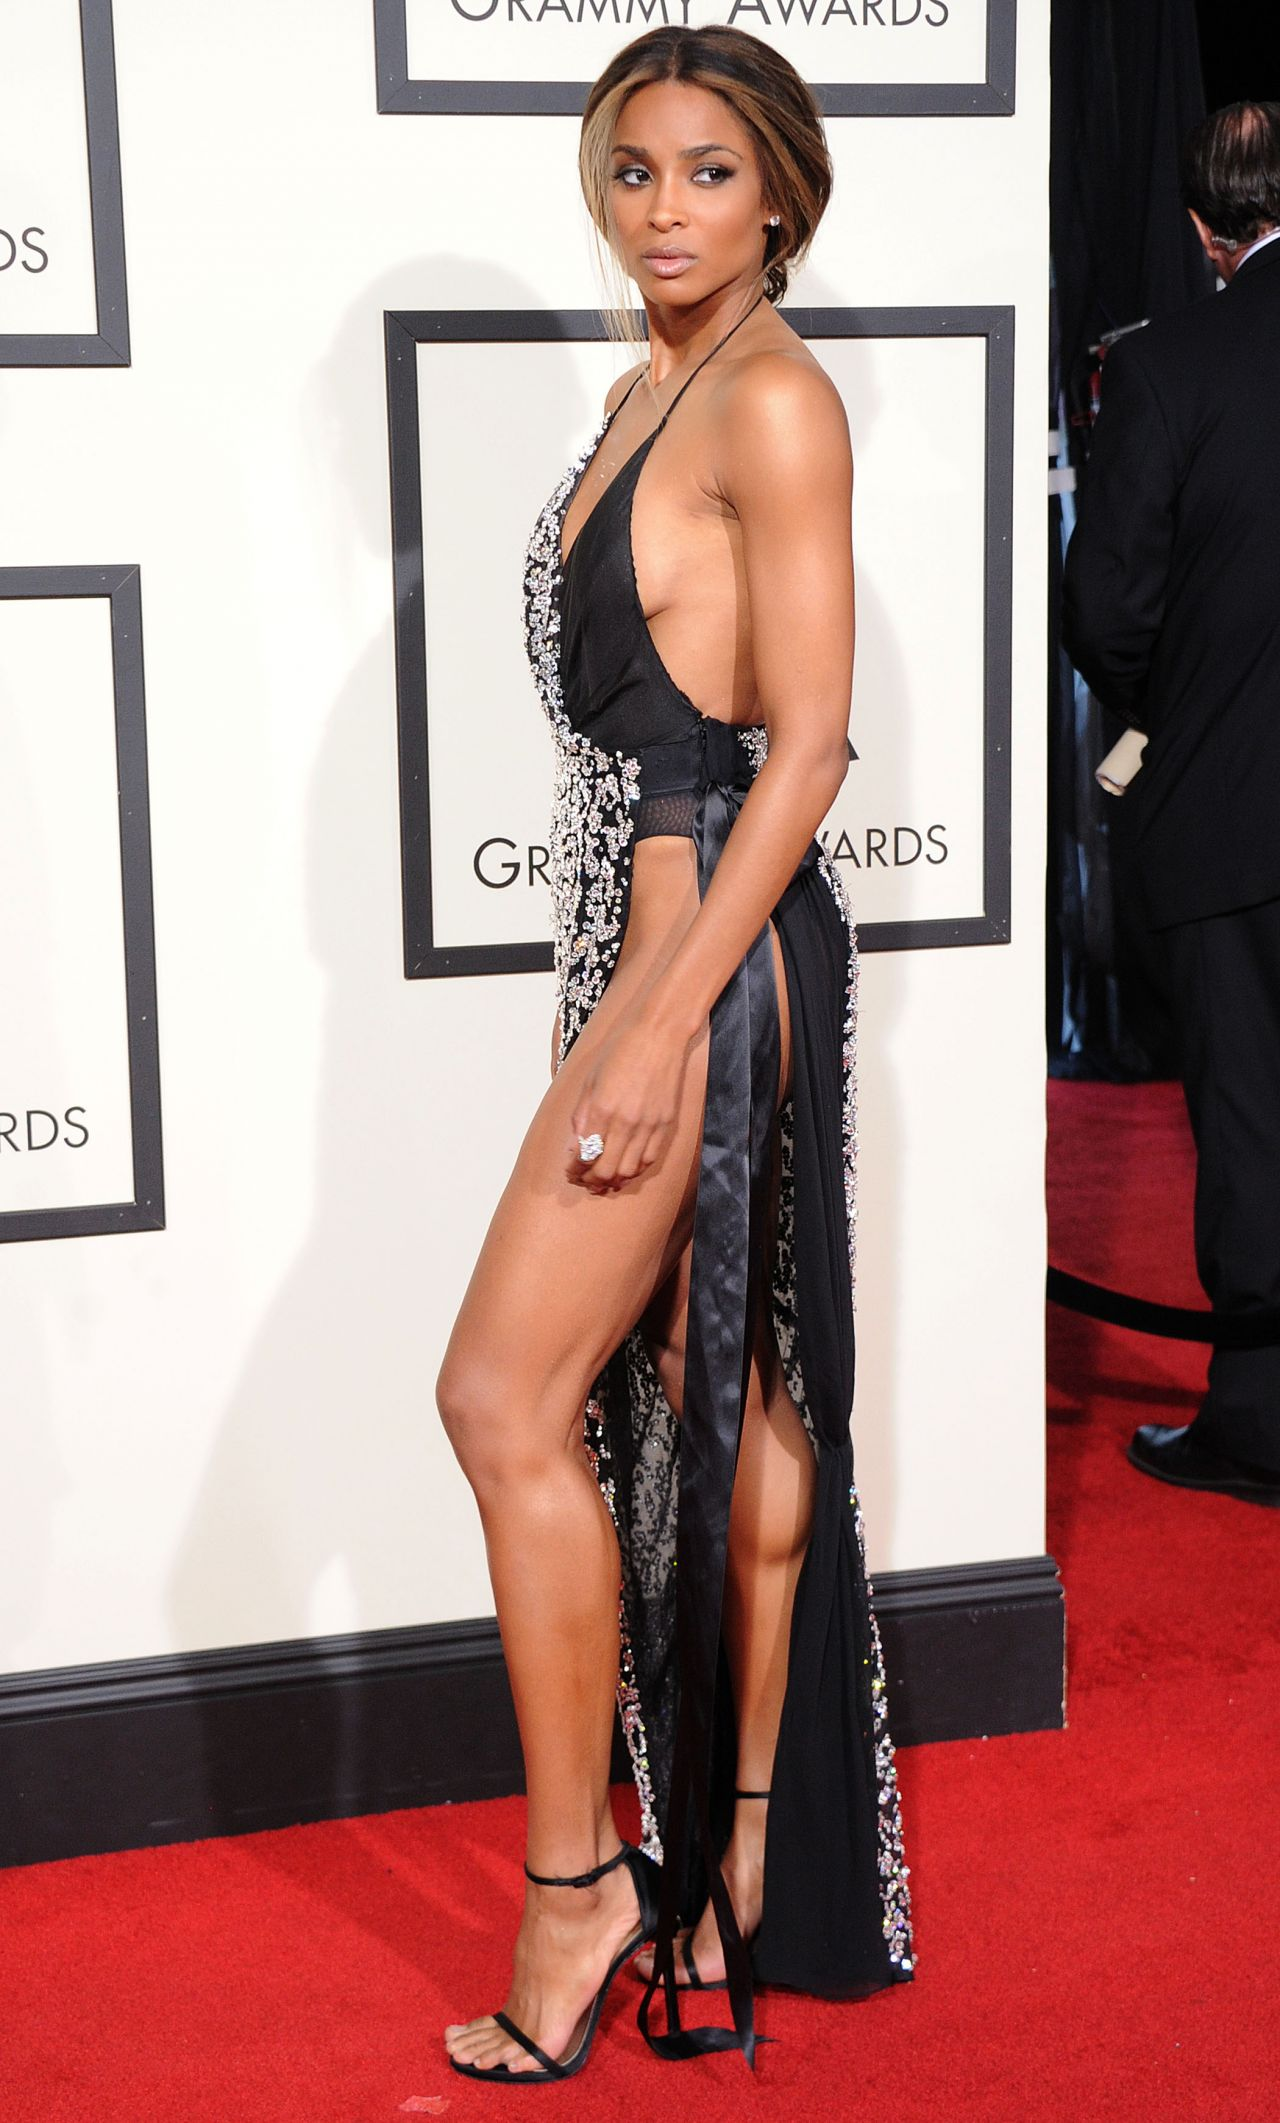 ciara-2016-grammy-awards-in-los-angeles-ca-12